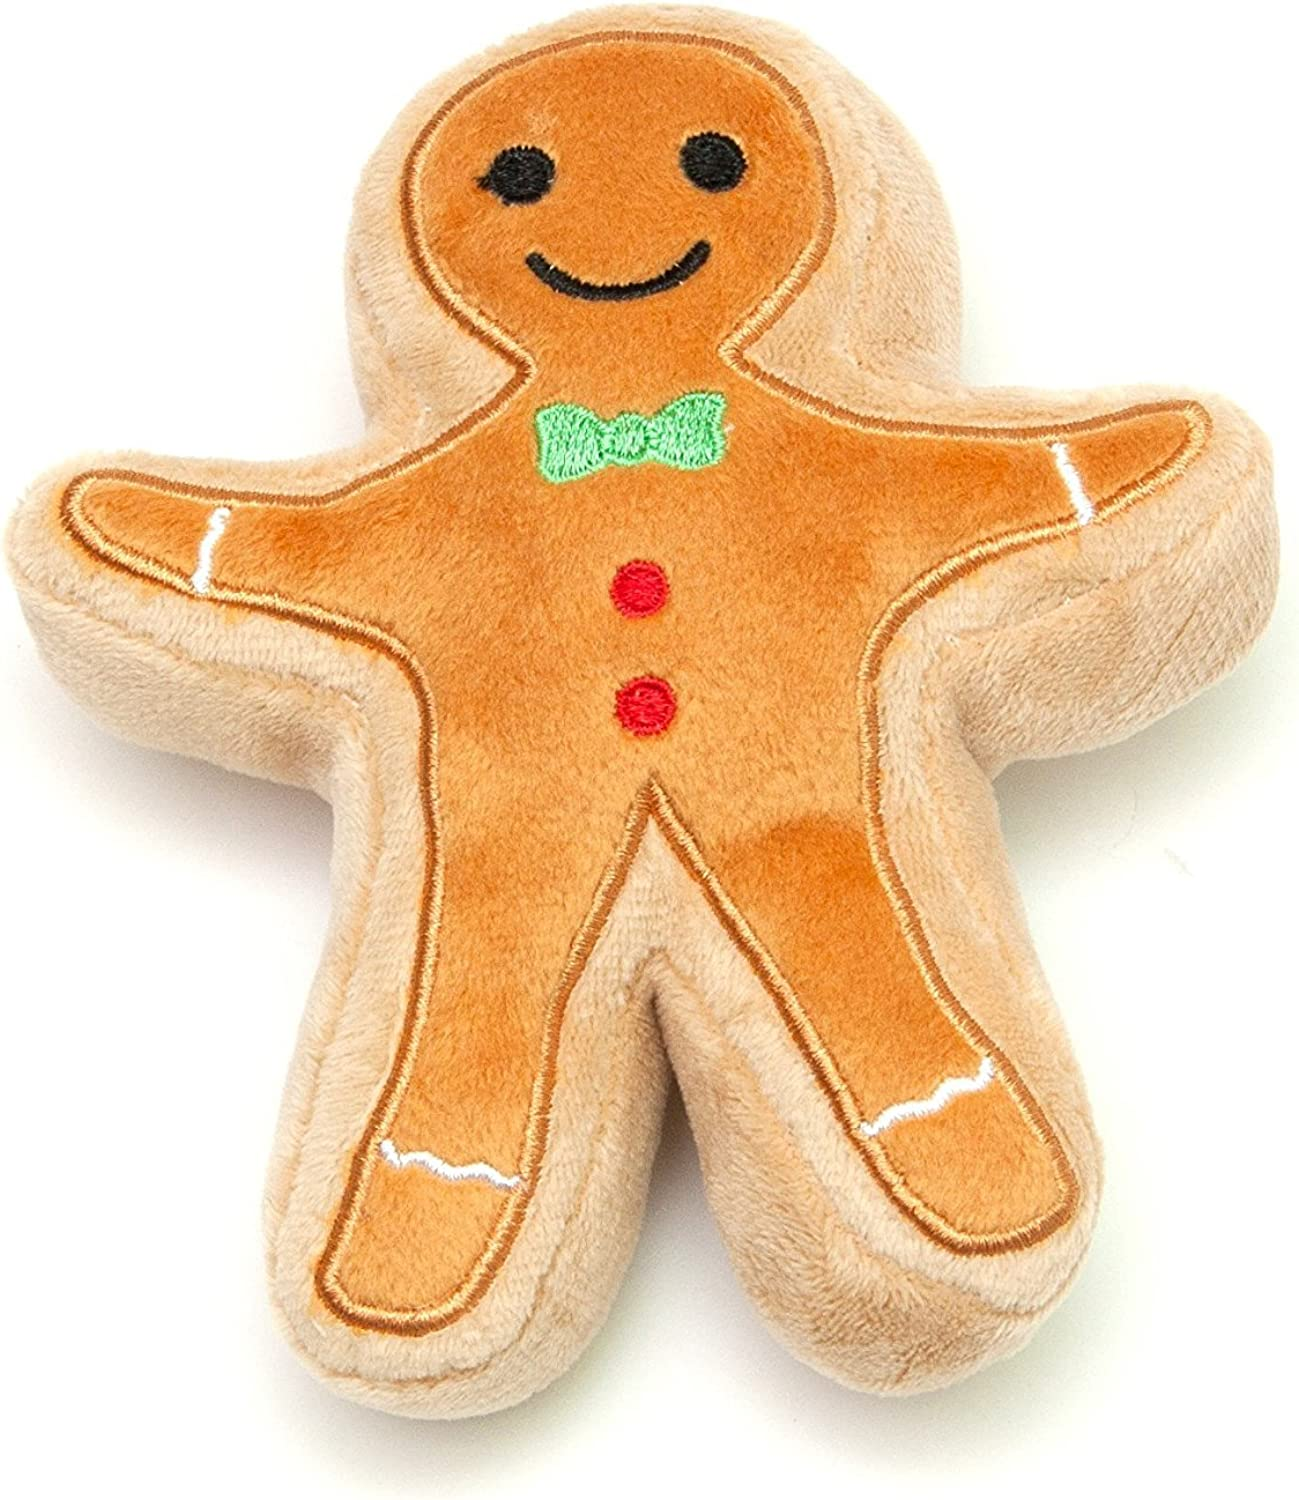 Christmas Sugar Cookie Plush Dog Toy by Midlee (Gingerbread Man, Small)